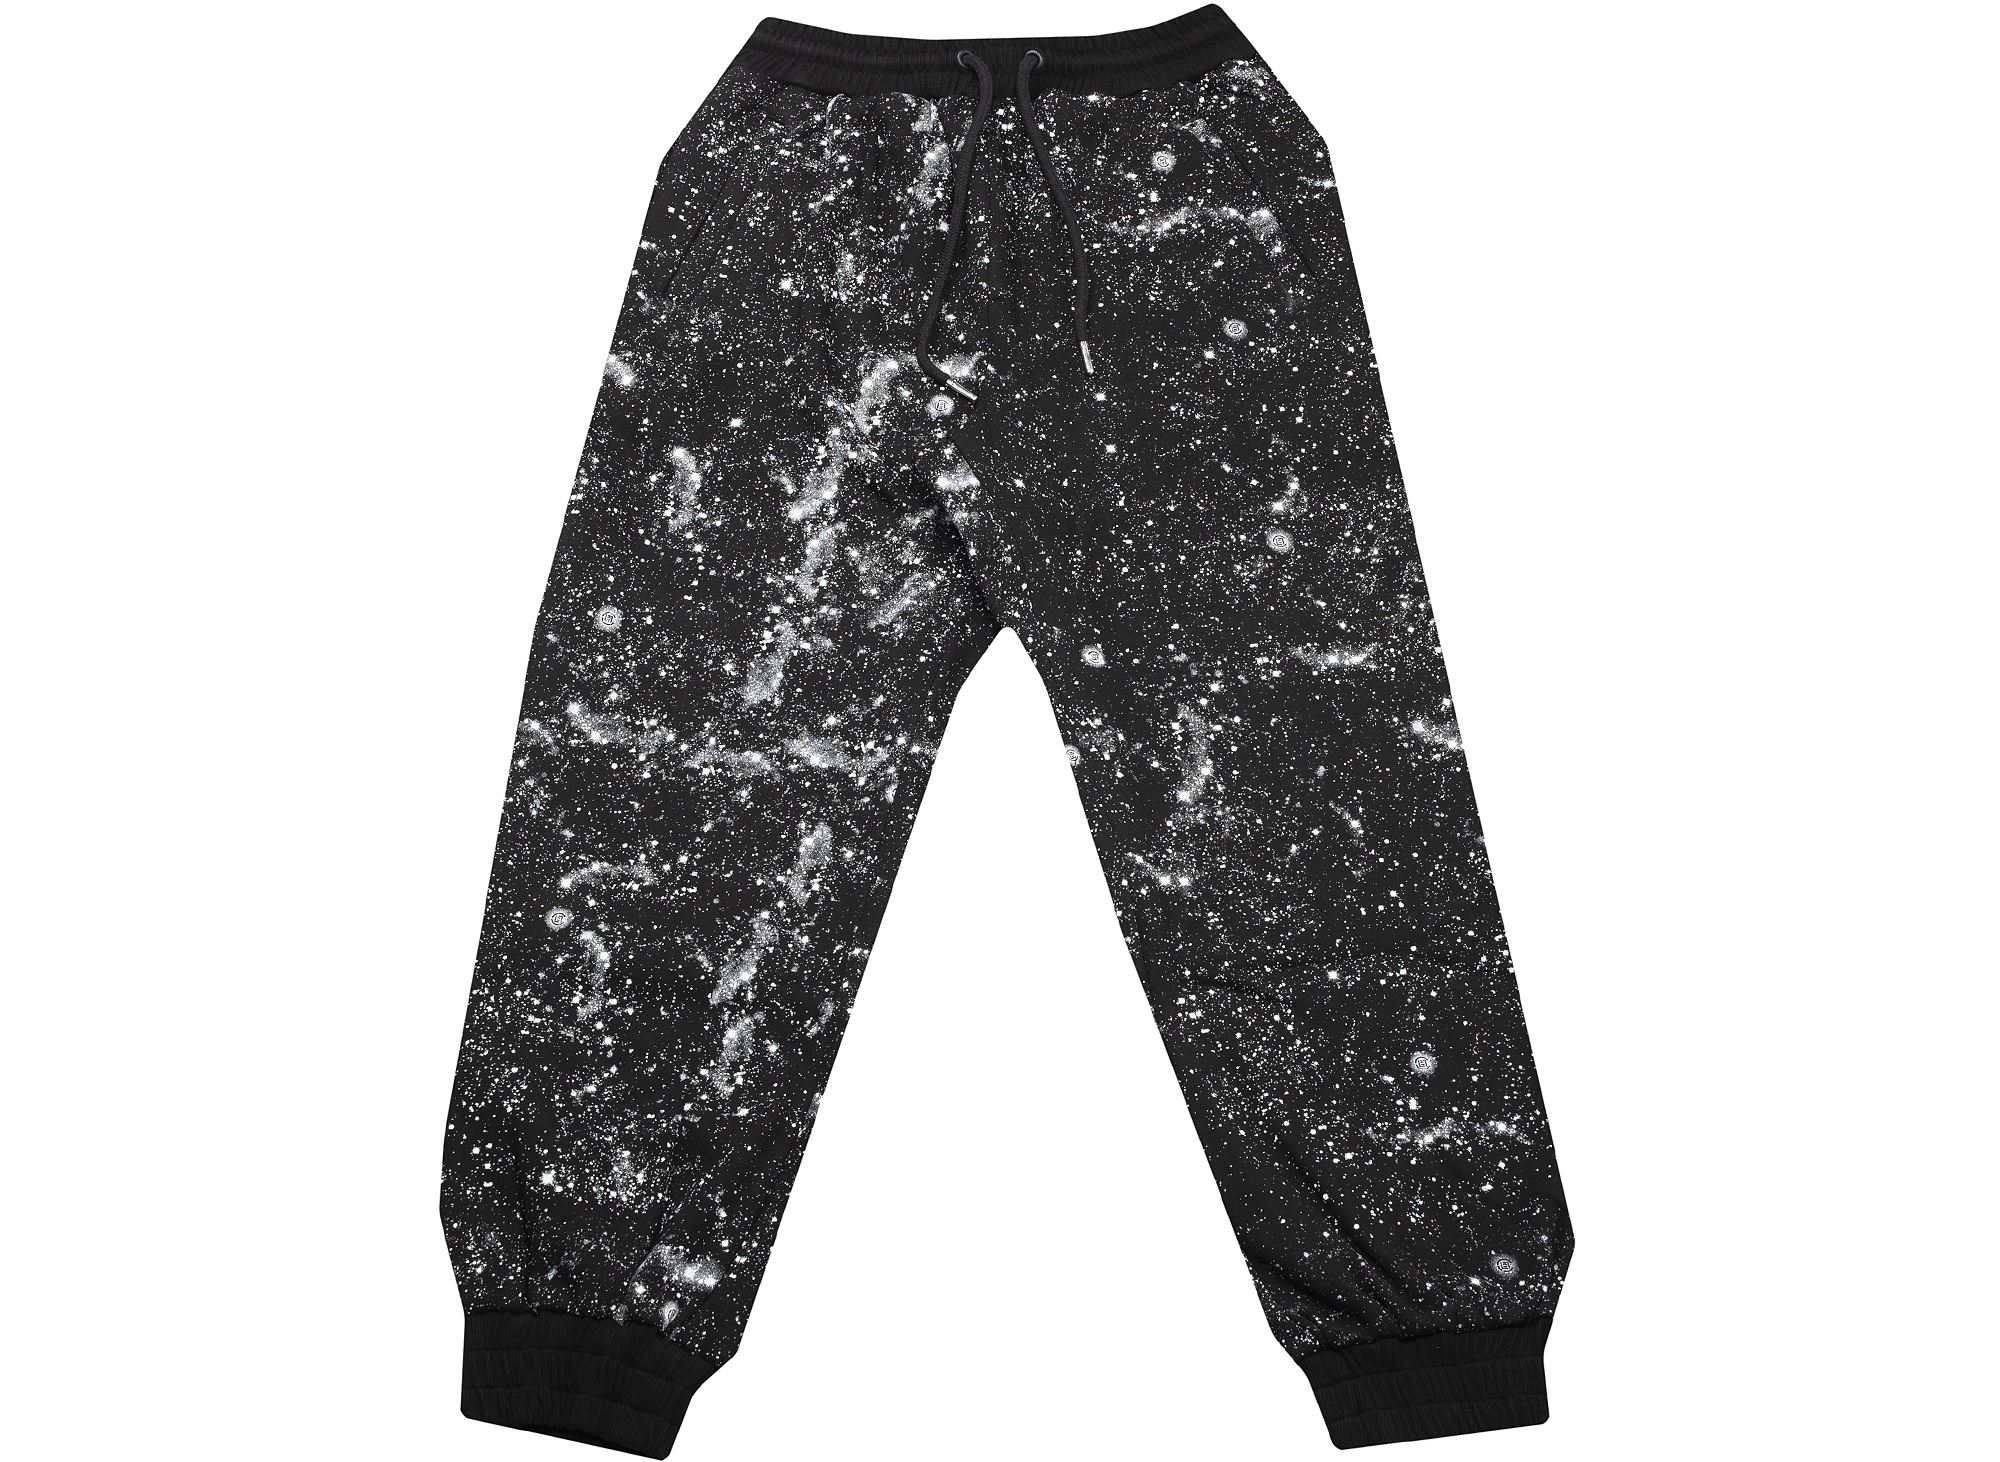 Clot Stars All Over Sweat Pants 'Black'